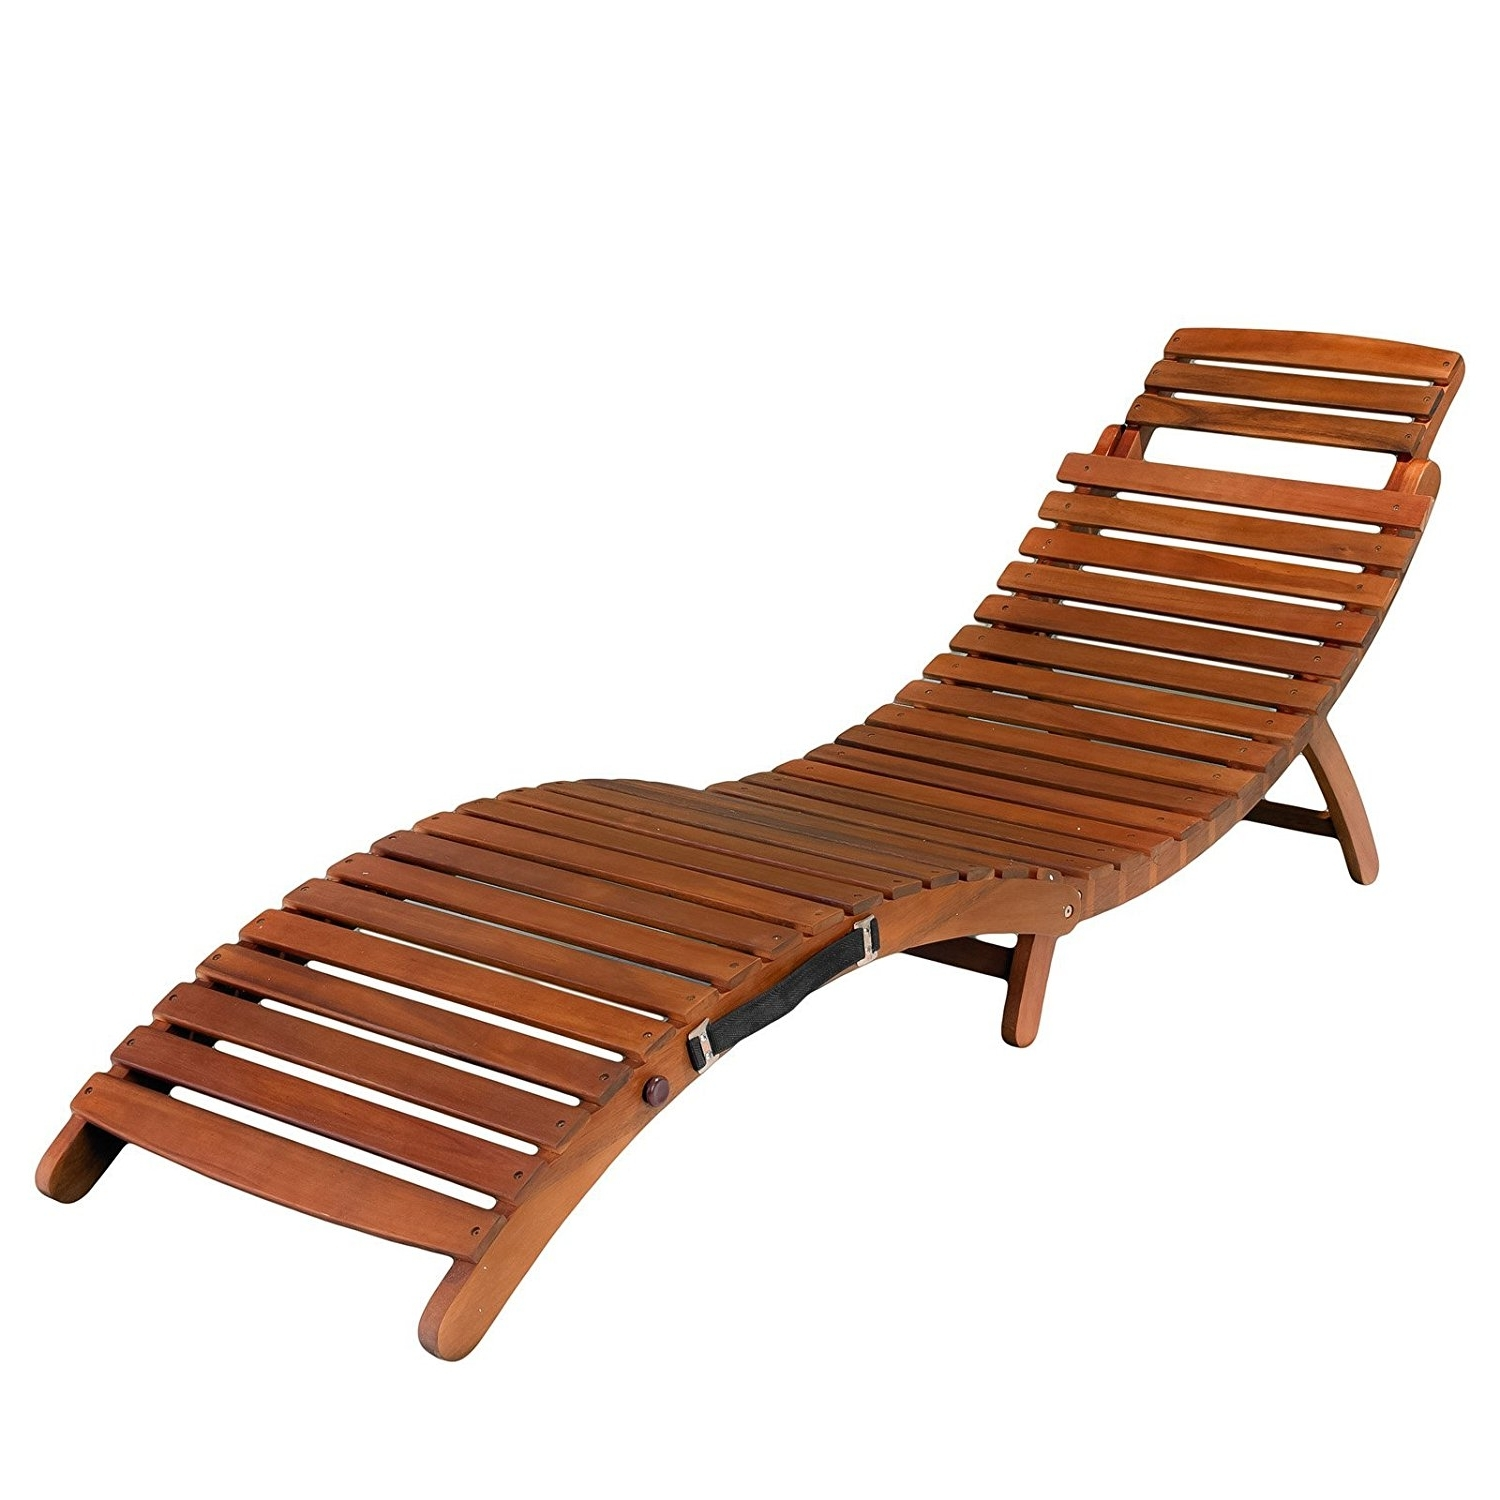 Folding Chaise Lounge Outdoor Chairs In Most Recent Amazon: Lahaina Outdoor Chaise Lounge: Garden & Outdoor (View 2 of 15)